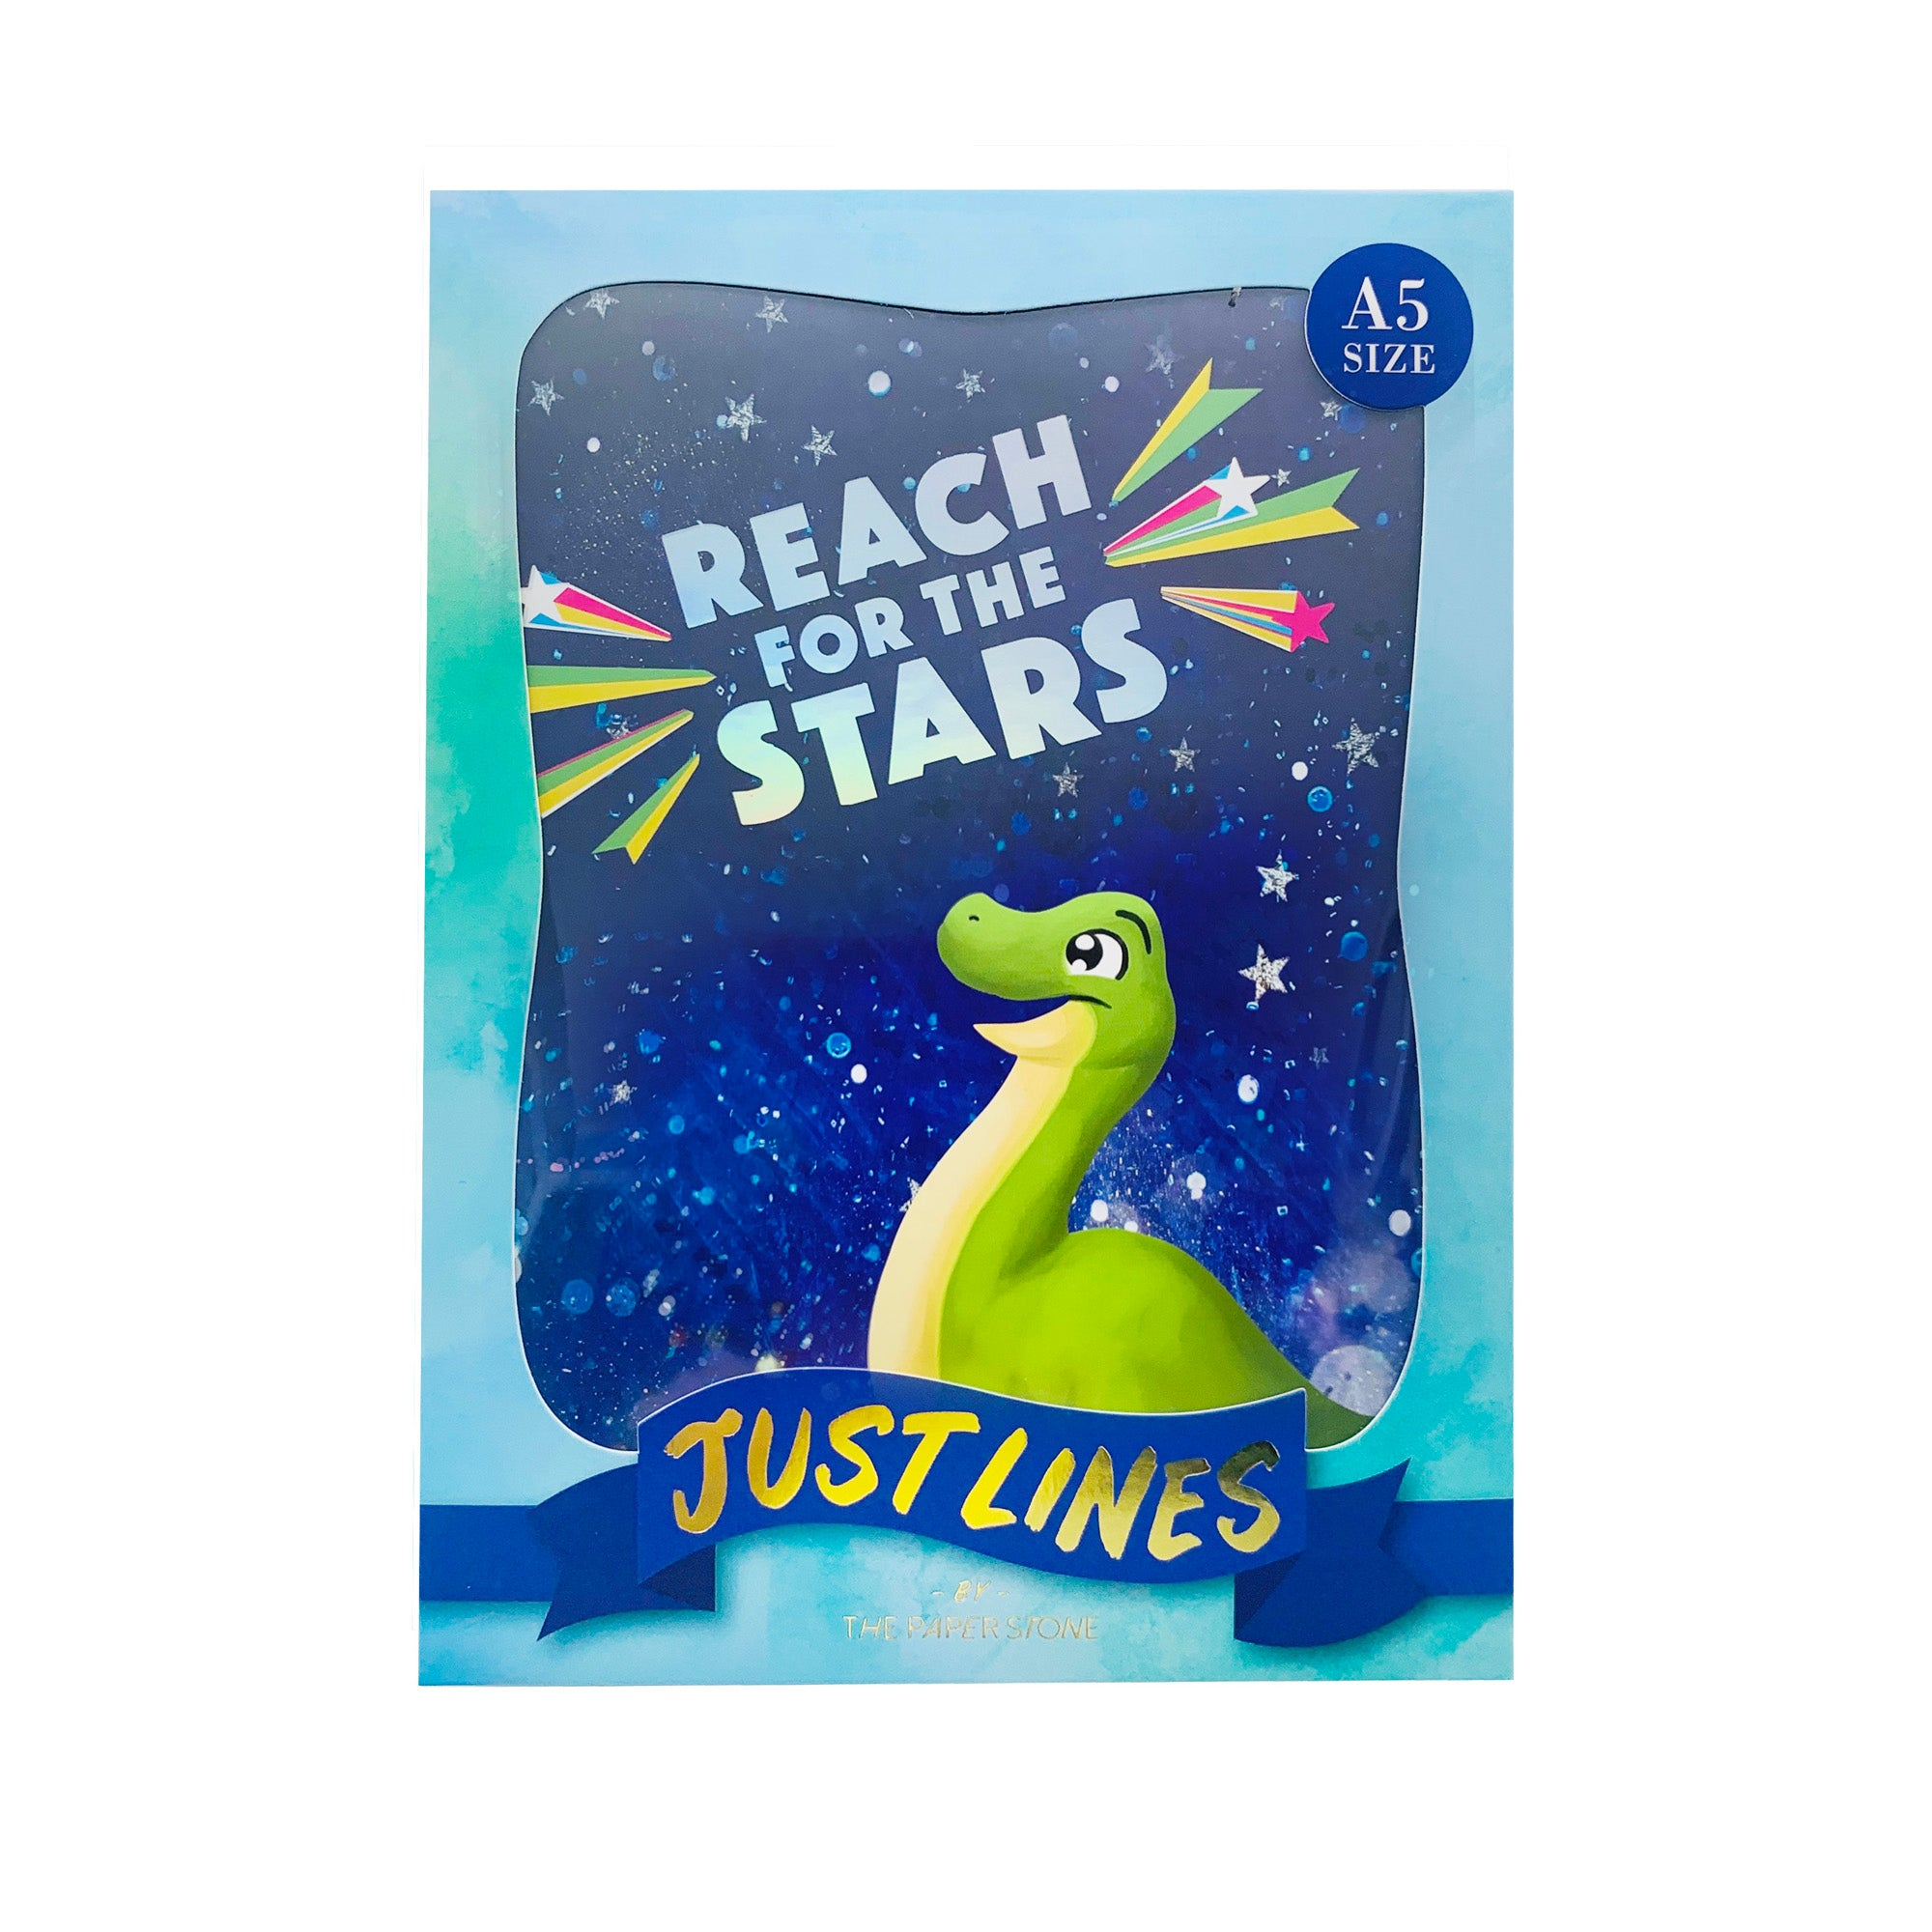 Just Lines - Reach for Stars Dino